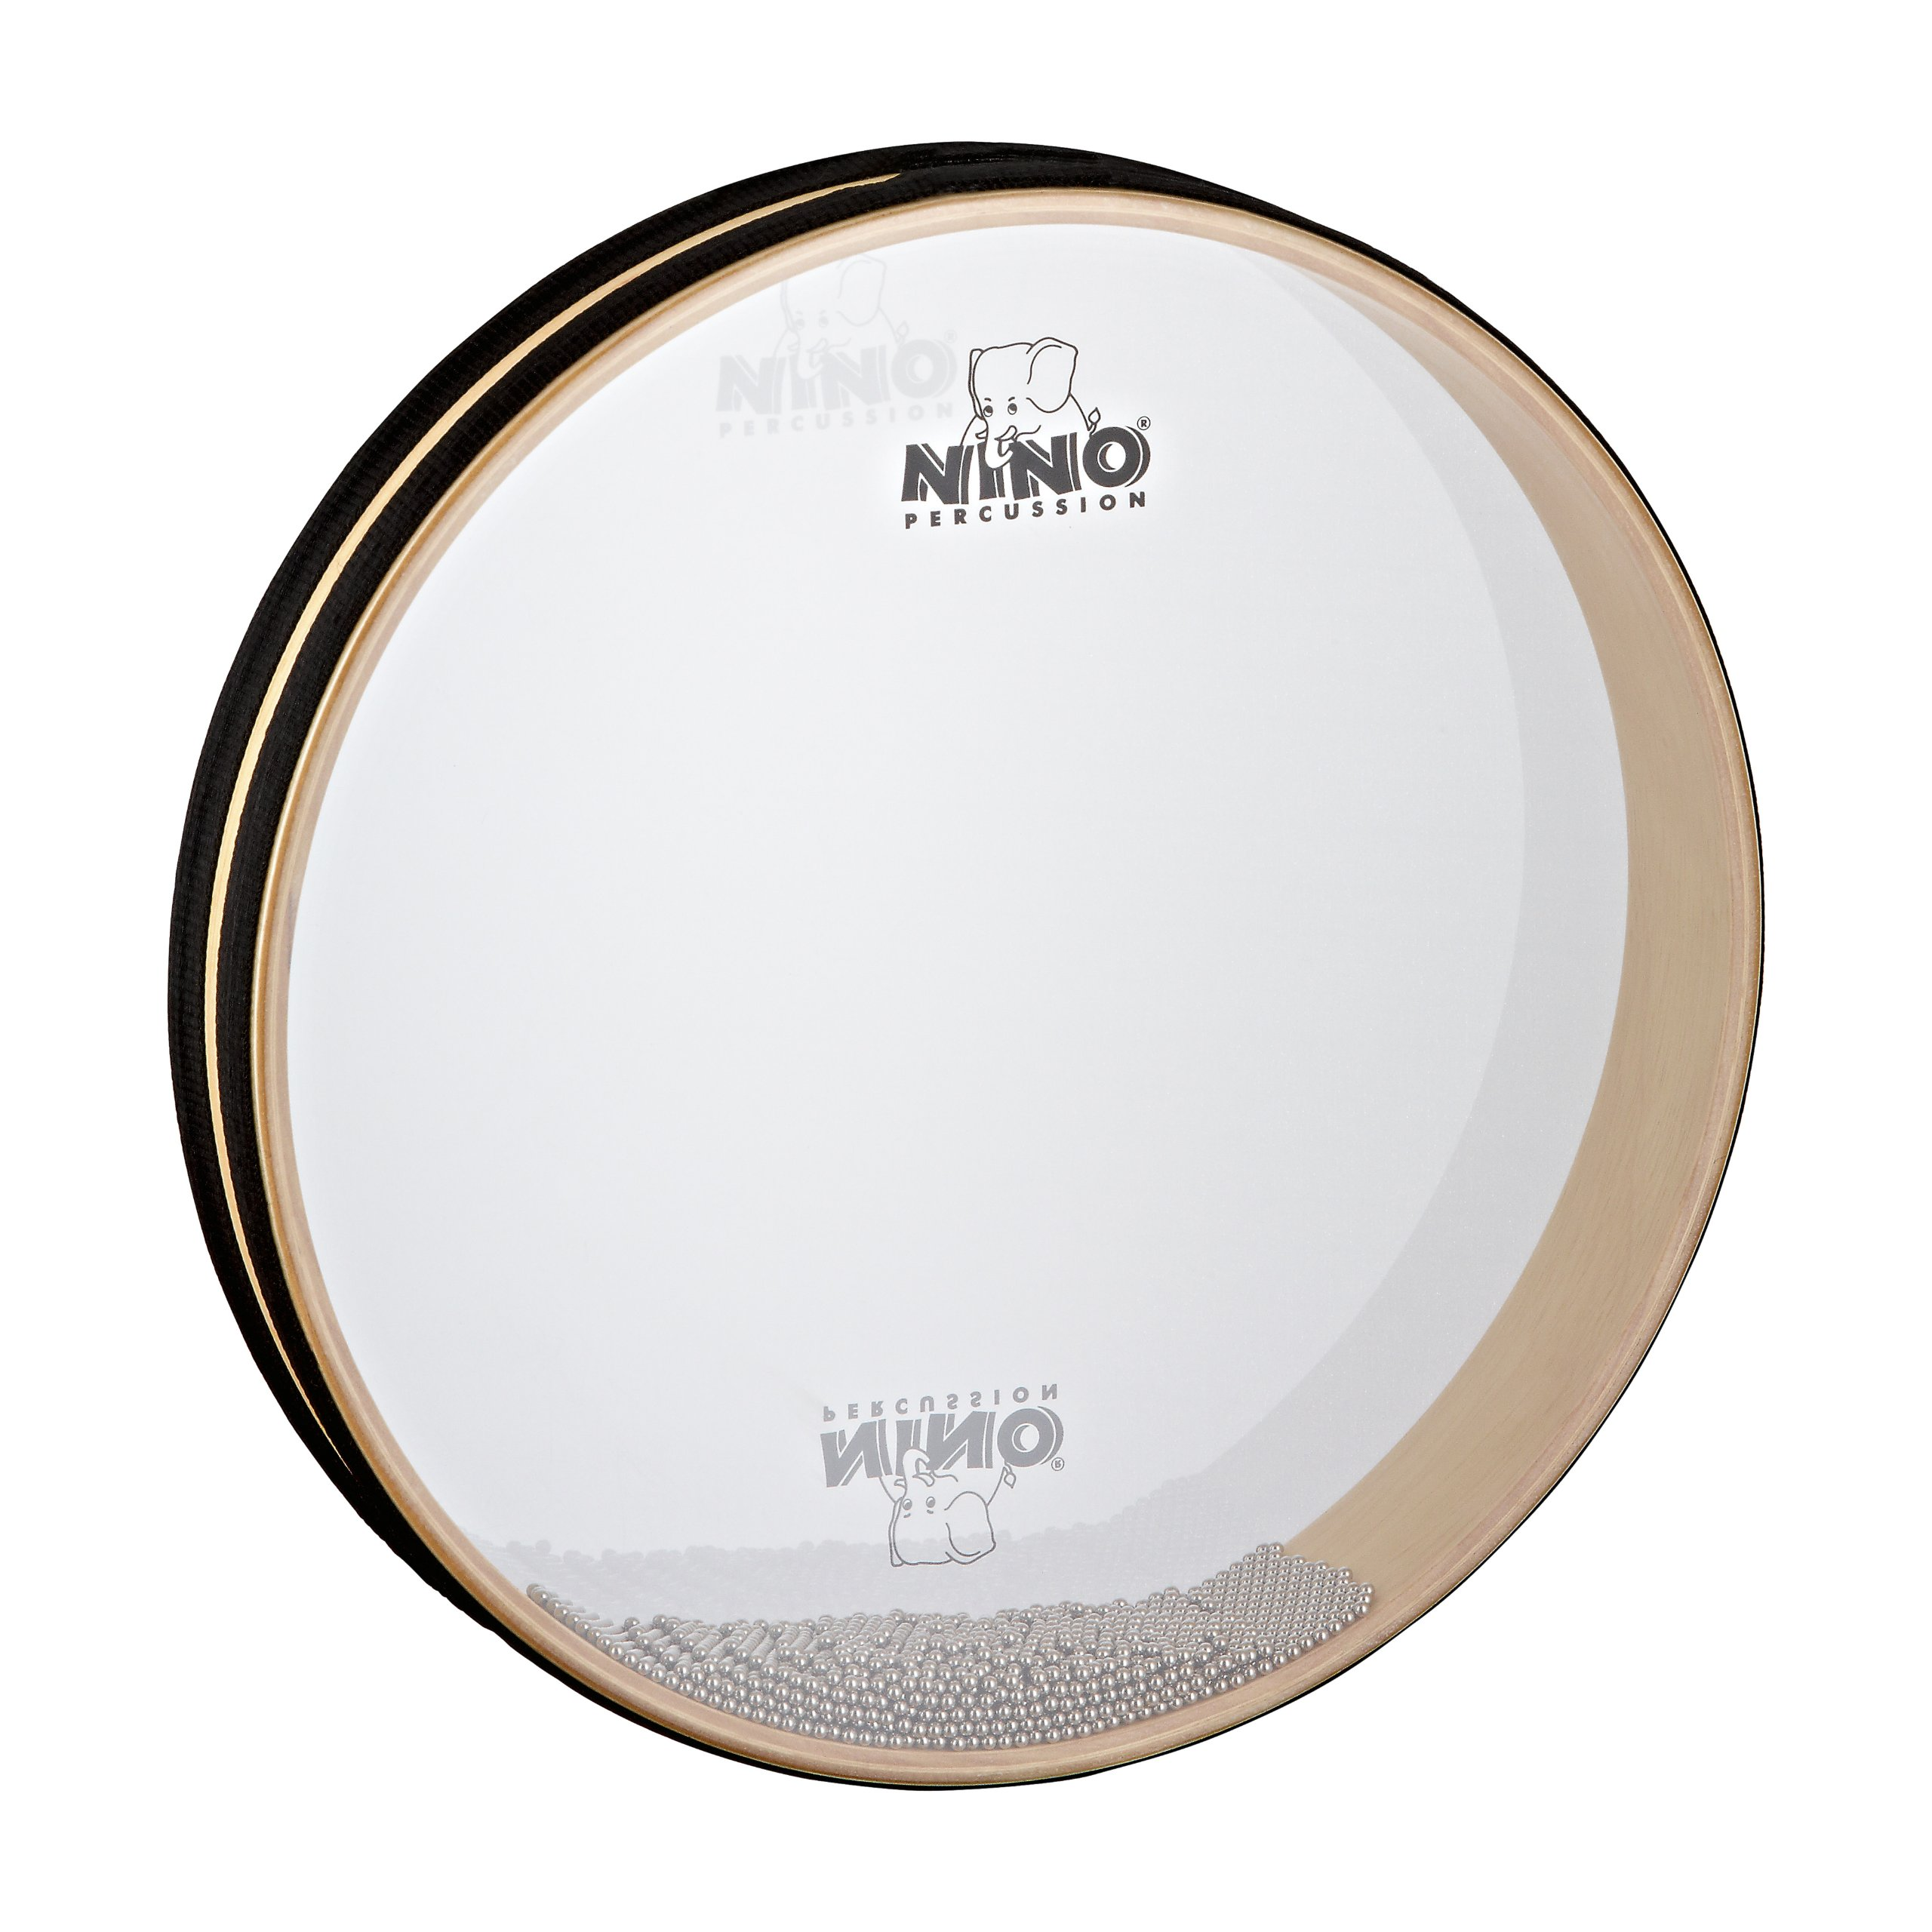 Nino Percussion NINO35 12-Inch Sea Drum with Synthetic Head, Natural Finish by Nino Percussion